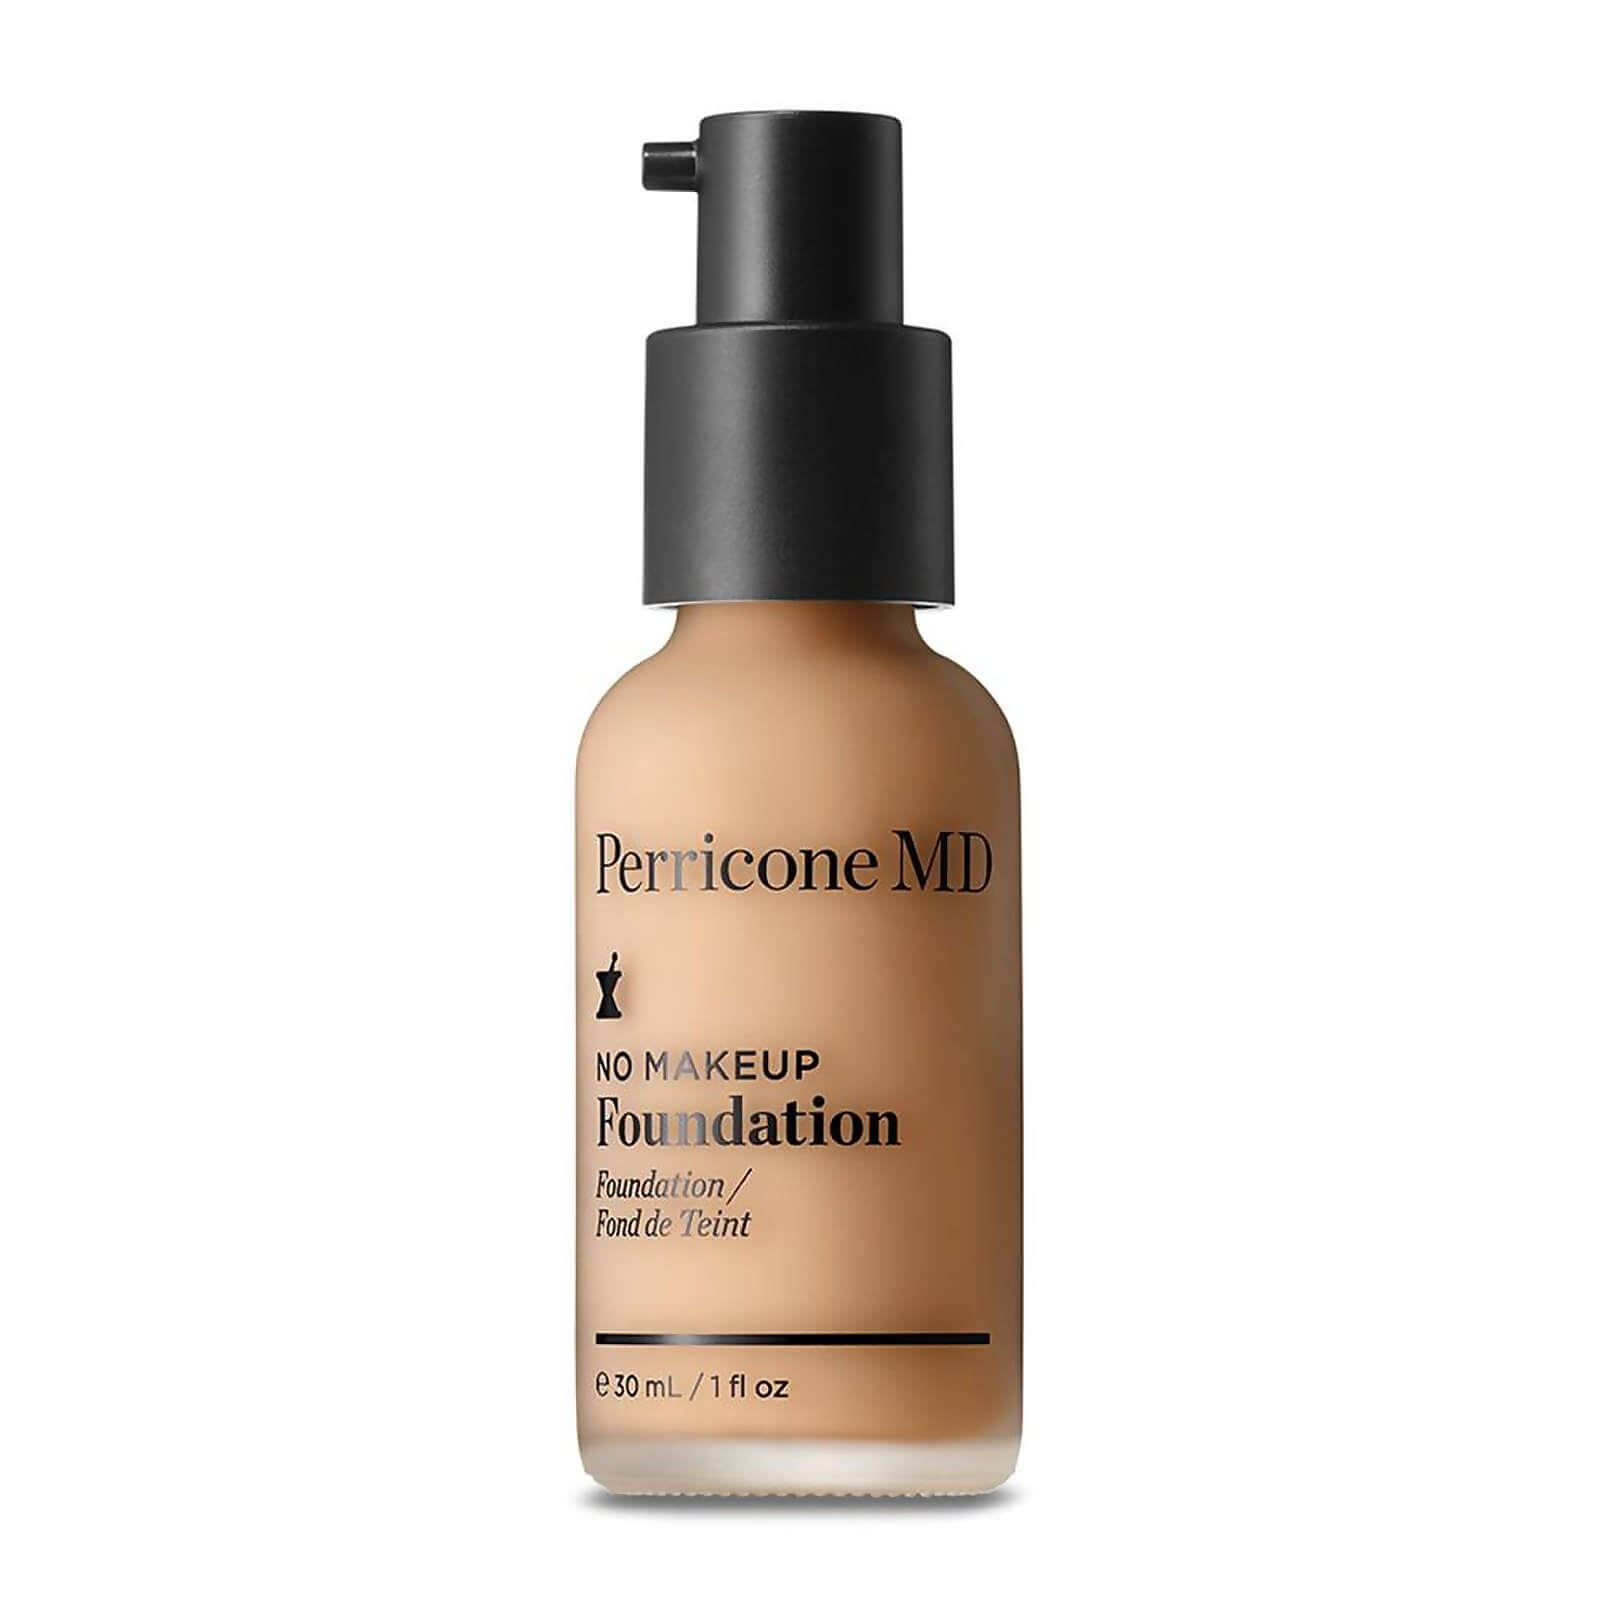 Perricone MD No Makeup Foundation Broad Spectrum SPF20 30ml (Various Shades) - Nude